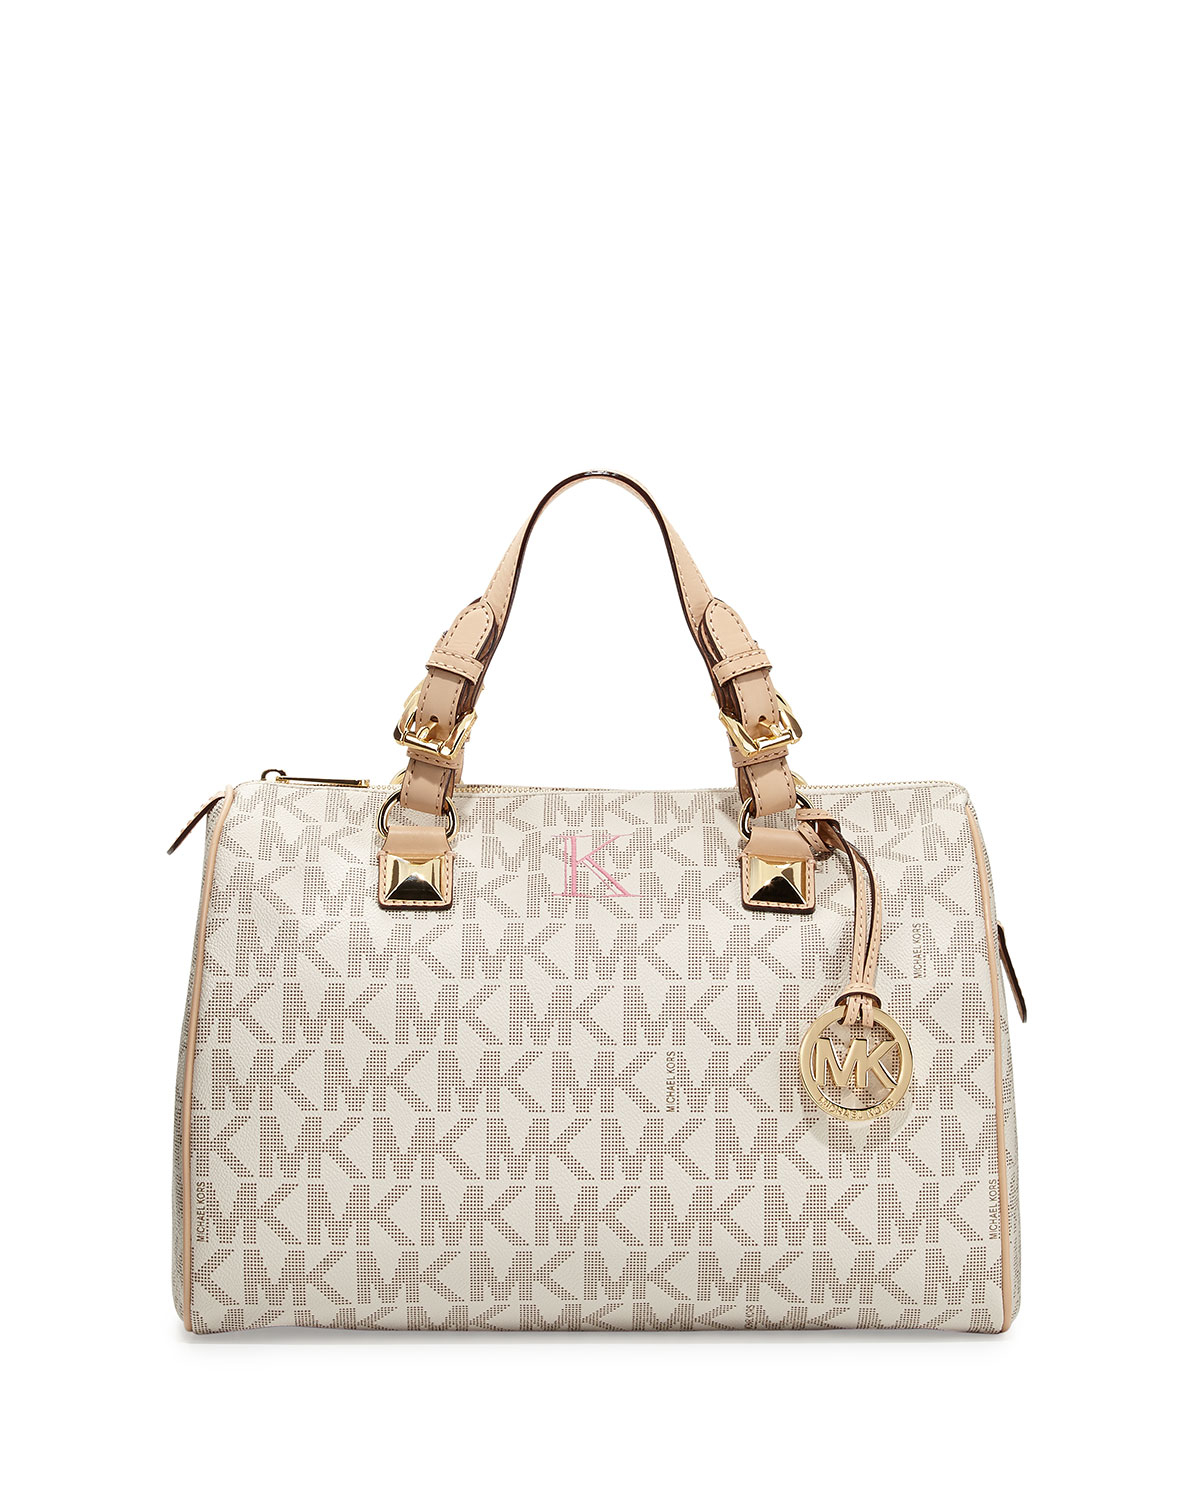 efc89ac998b7 Gallery. Previously sold at: Neiman Marcus · Women's Michael Kors Grayson